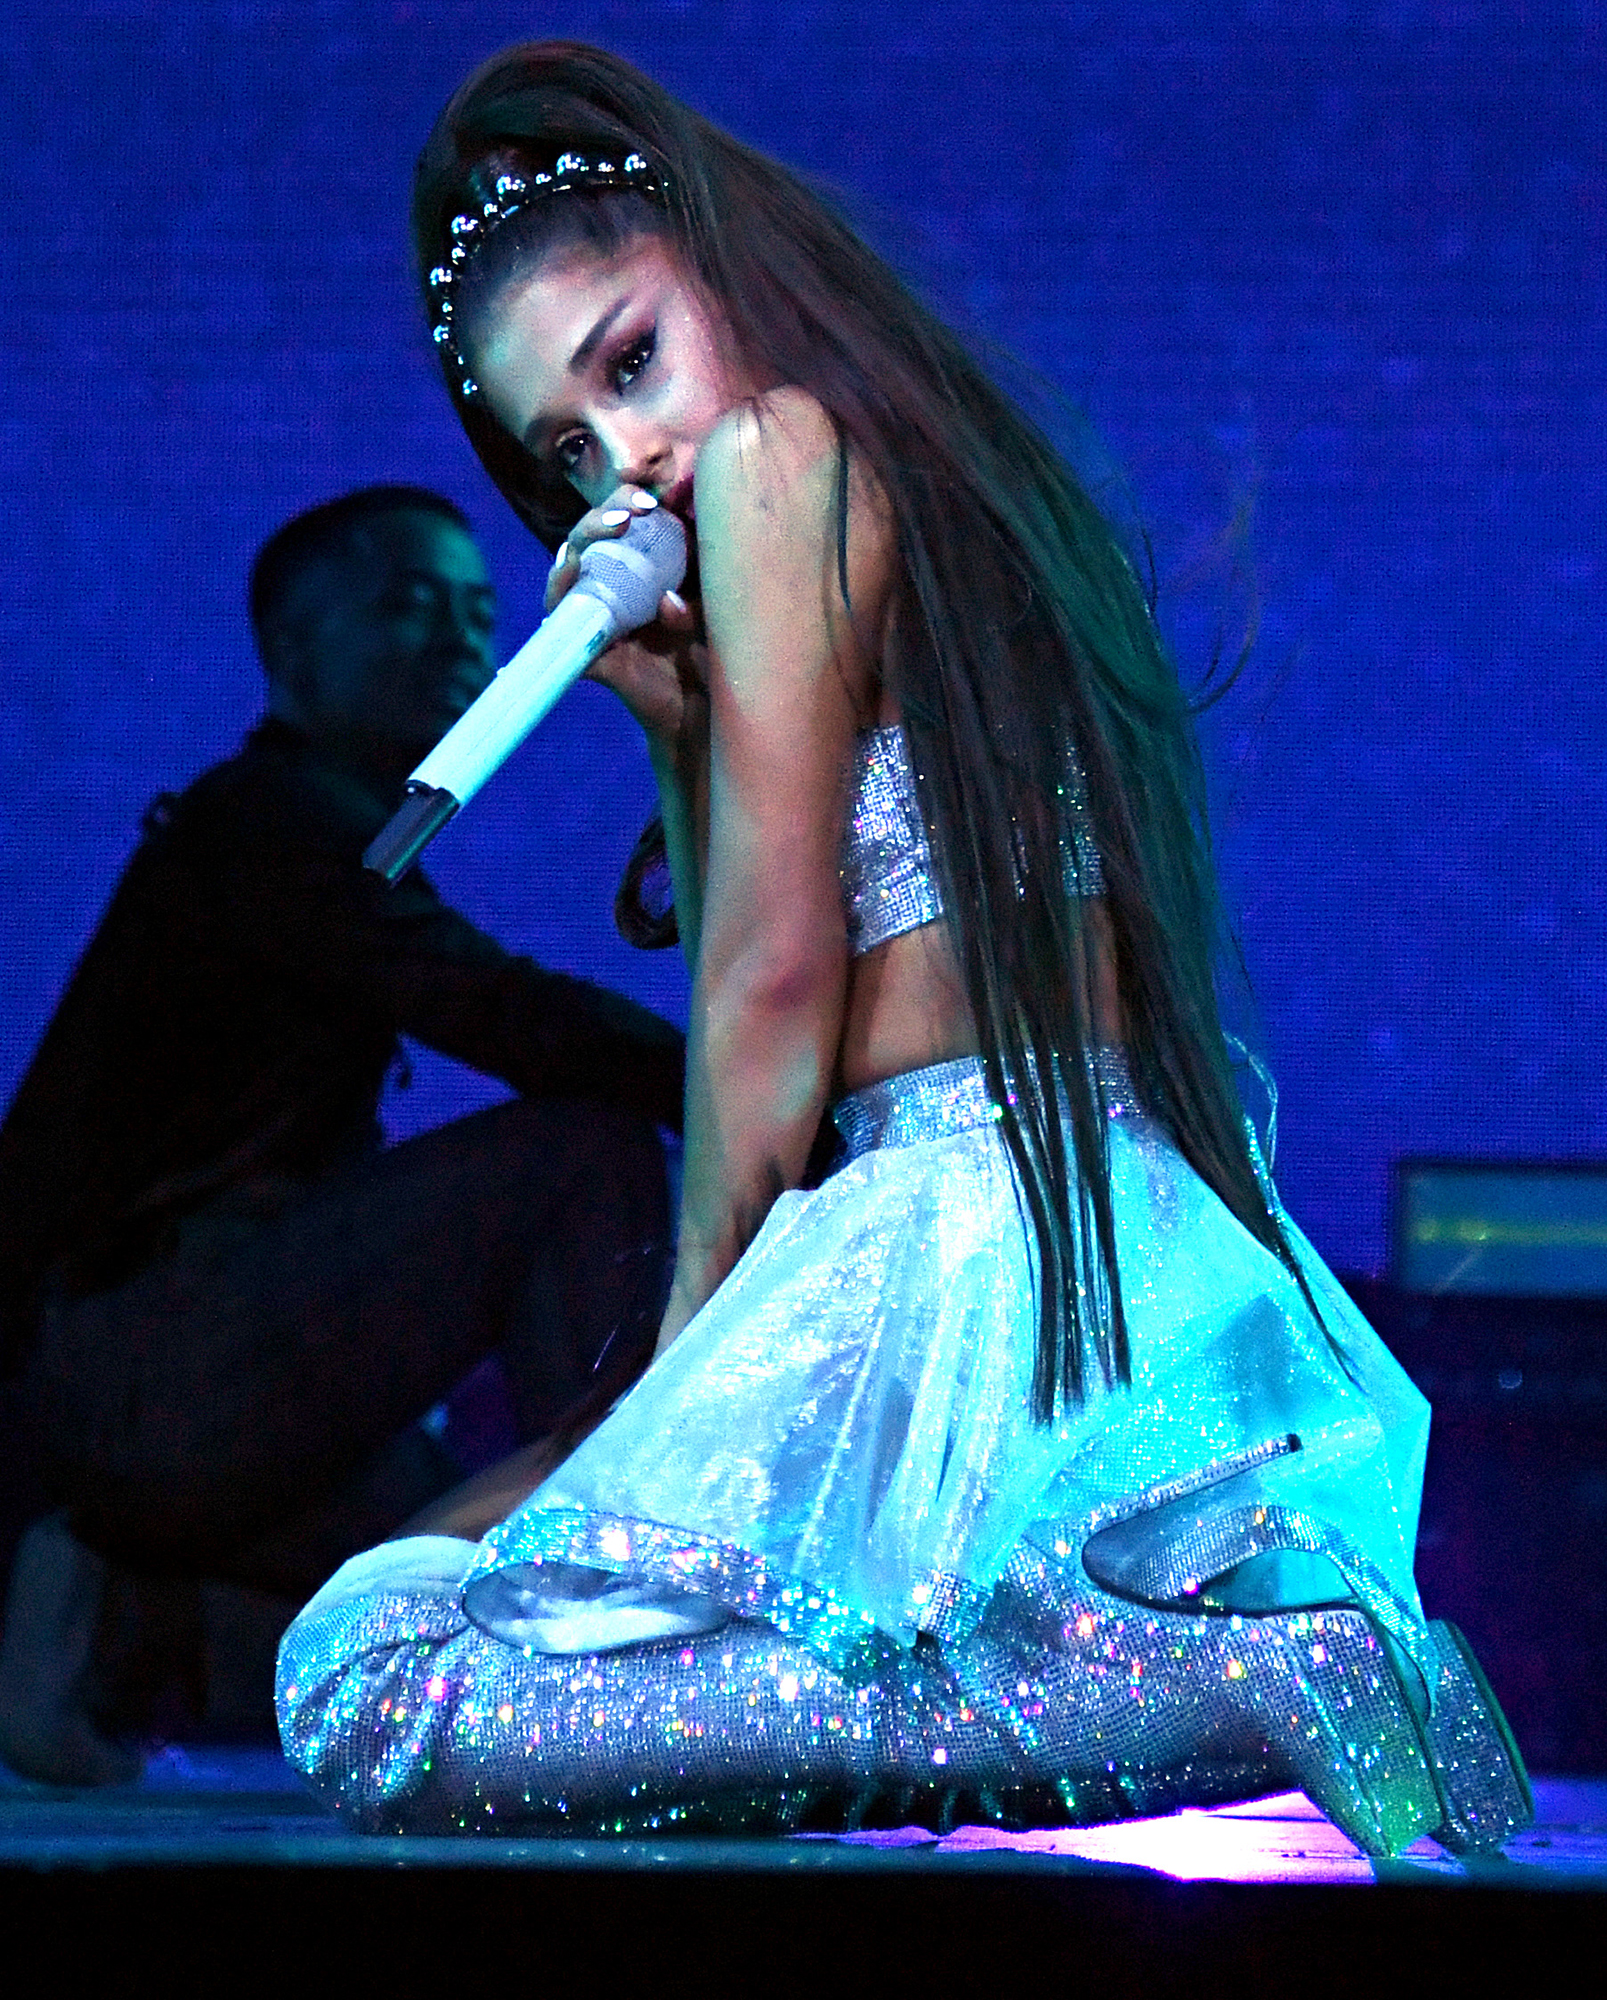 Ariana-Grande-tribute-Mac-Miller-Coachella - INDIO, CALIFORNIA – APRIL 14: Ariana Grande performs on Coachella Stage during the 2019 Coachella Valley Music And Arts Festival on April 14, 2019 in Indio, California. (Photo by Kevin Mazur/Getty Images for AG)